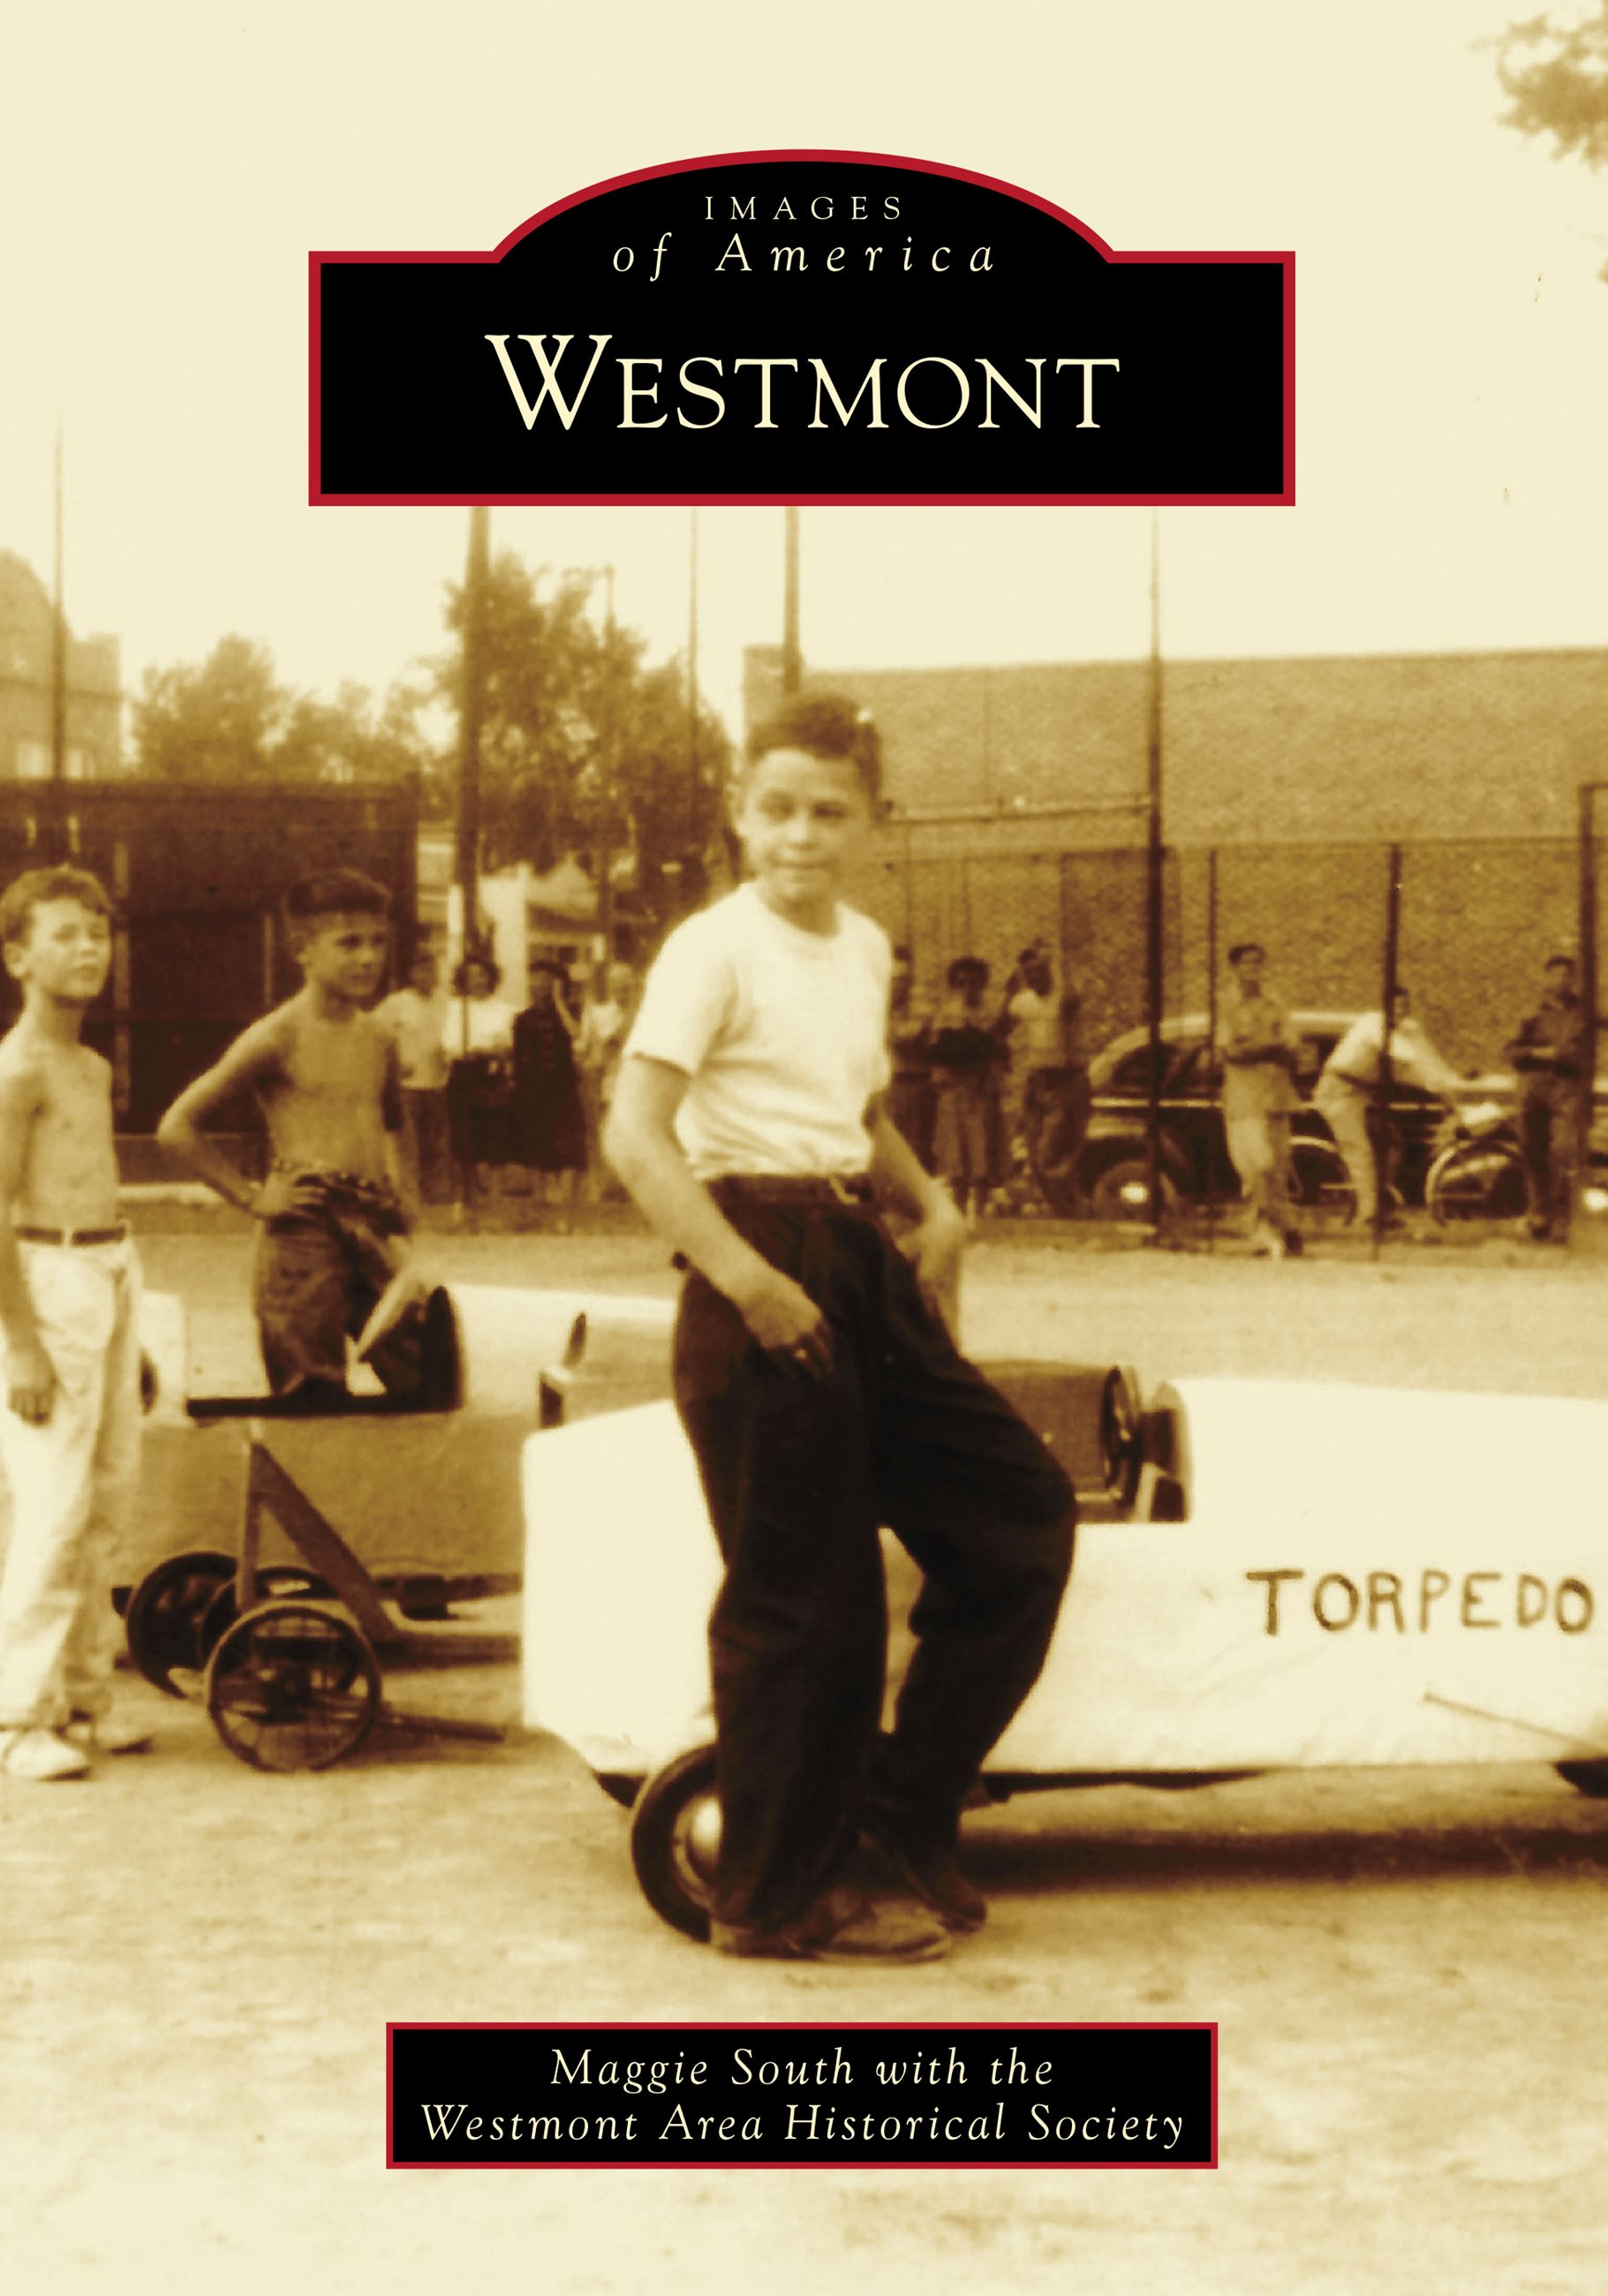 History of Westmont Book Cover.jpg